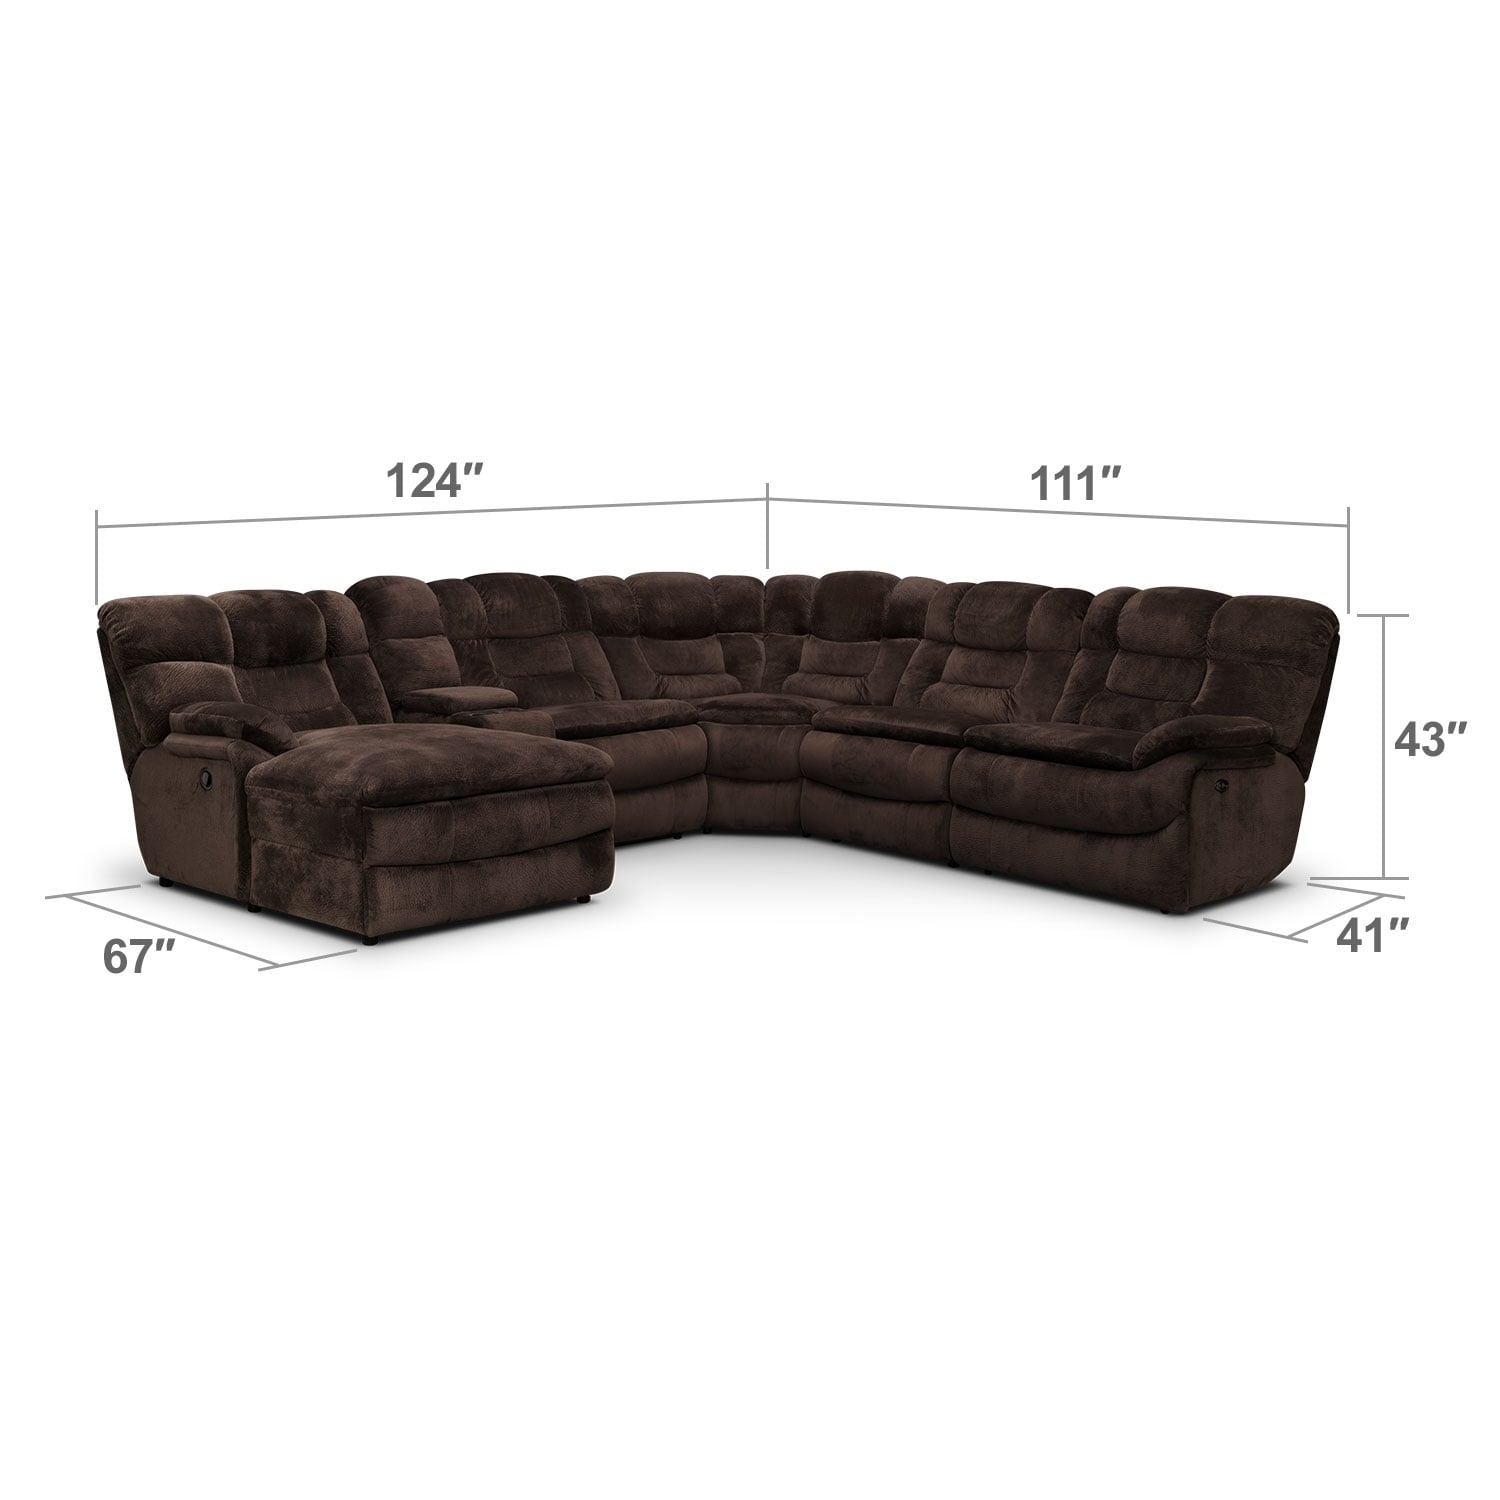 Living Room Furniture - Big Softie 6-Piece Power Reclining Sectional with Left-Facing Chaise - Chocolate